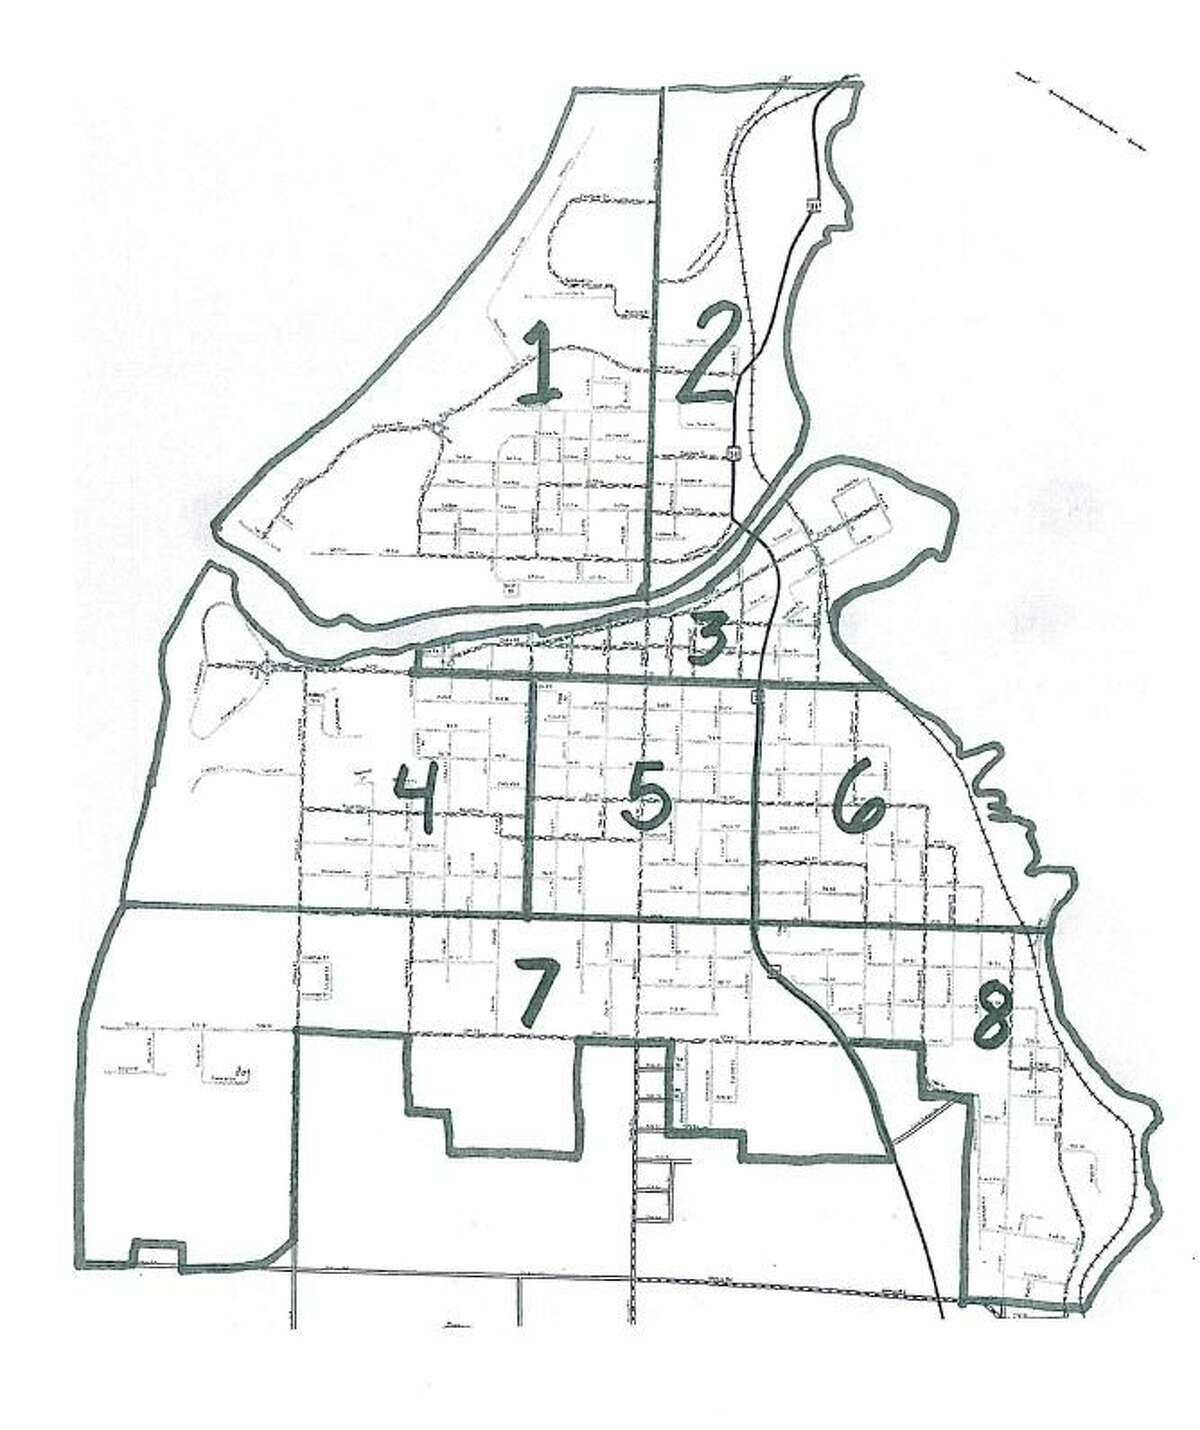 The district map provided by the Manistee Police Department shows District 1 and 2 are north Manistee River divided by Washington Street with 1 on the west side of Washington and 2 on the east side of the street and north of the river. Then Districts 3-8 south of the river in sequence. (Courtesy image)